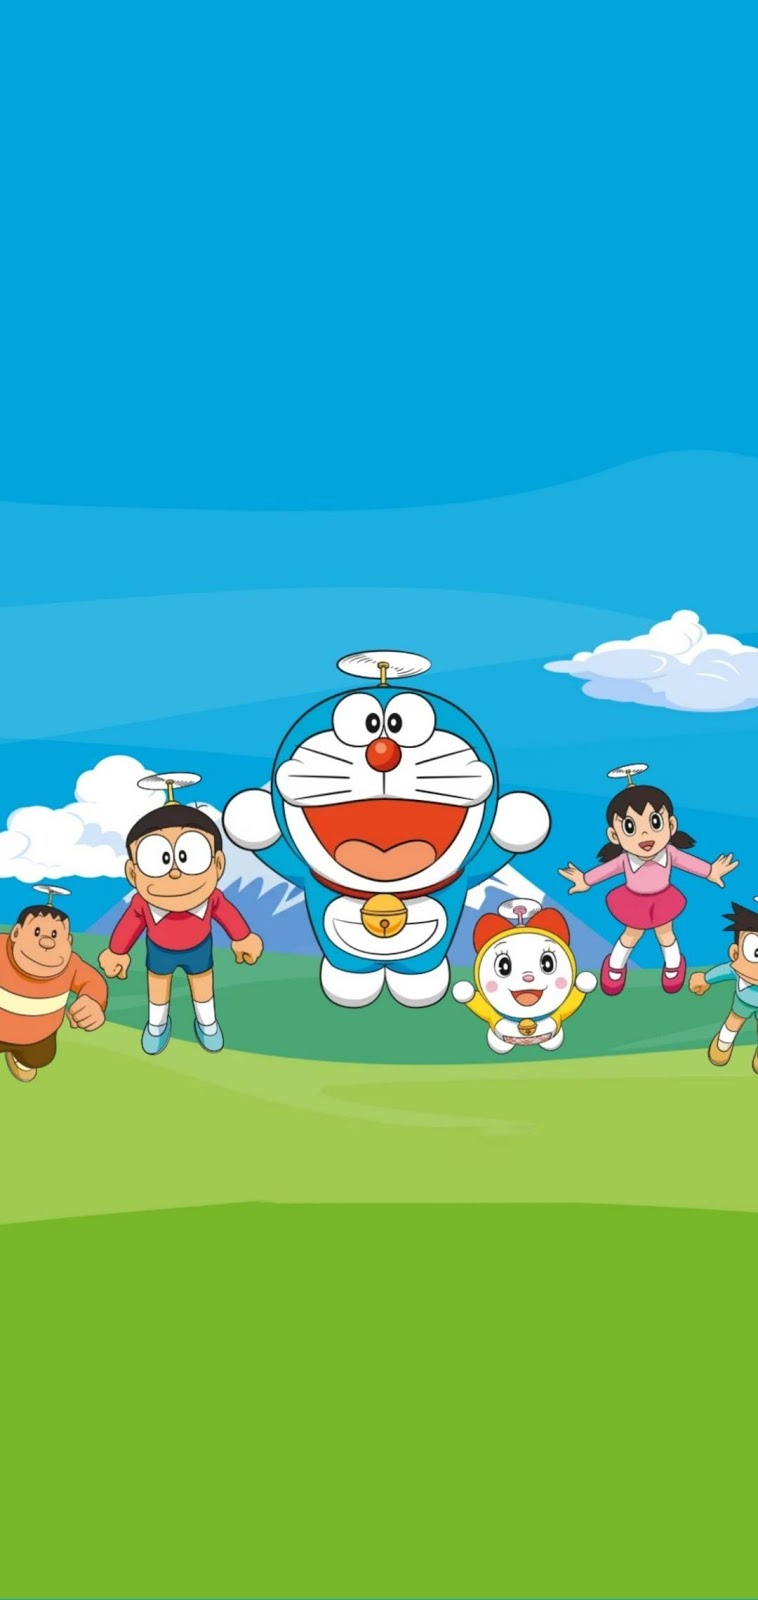 Android Wallpaper Doraemon Terbaru doraemon di 2020